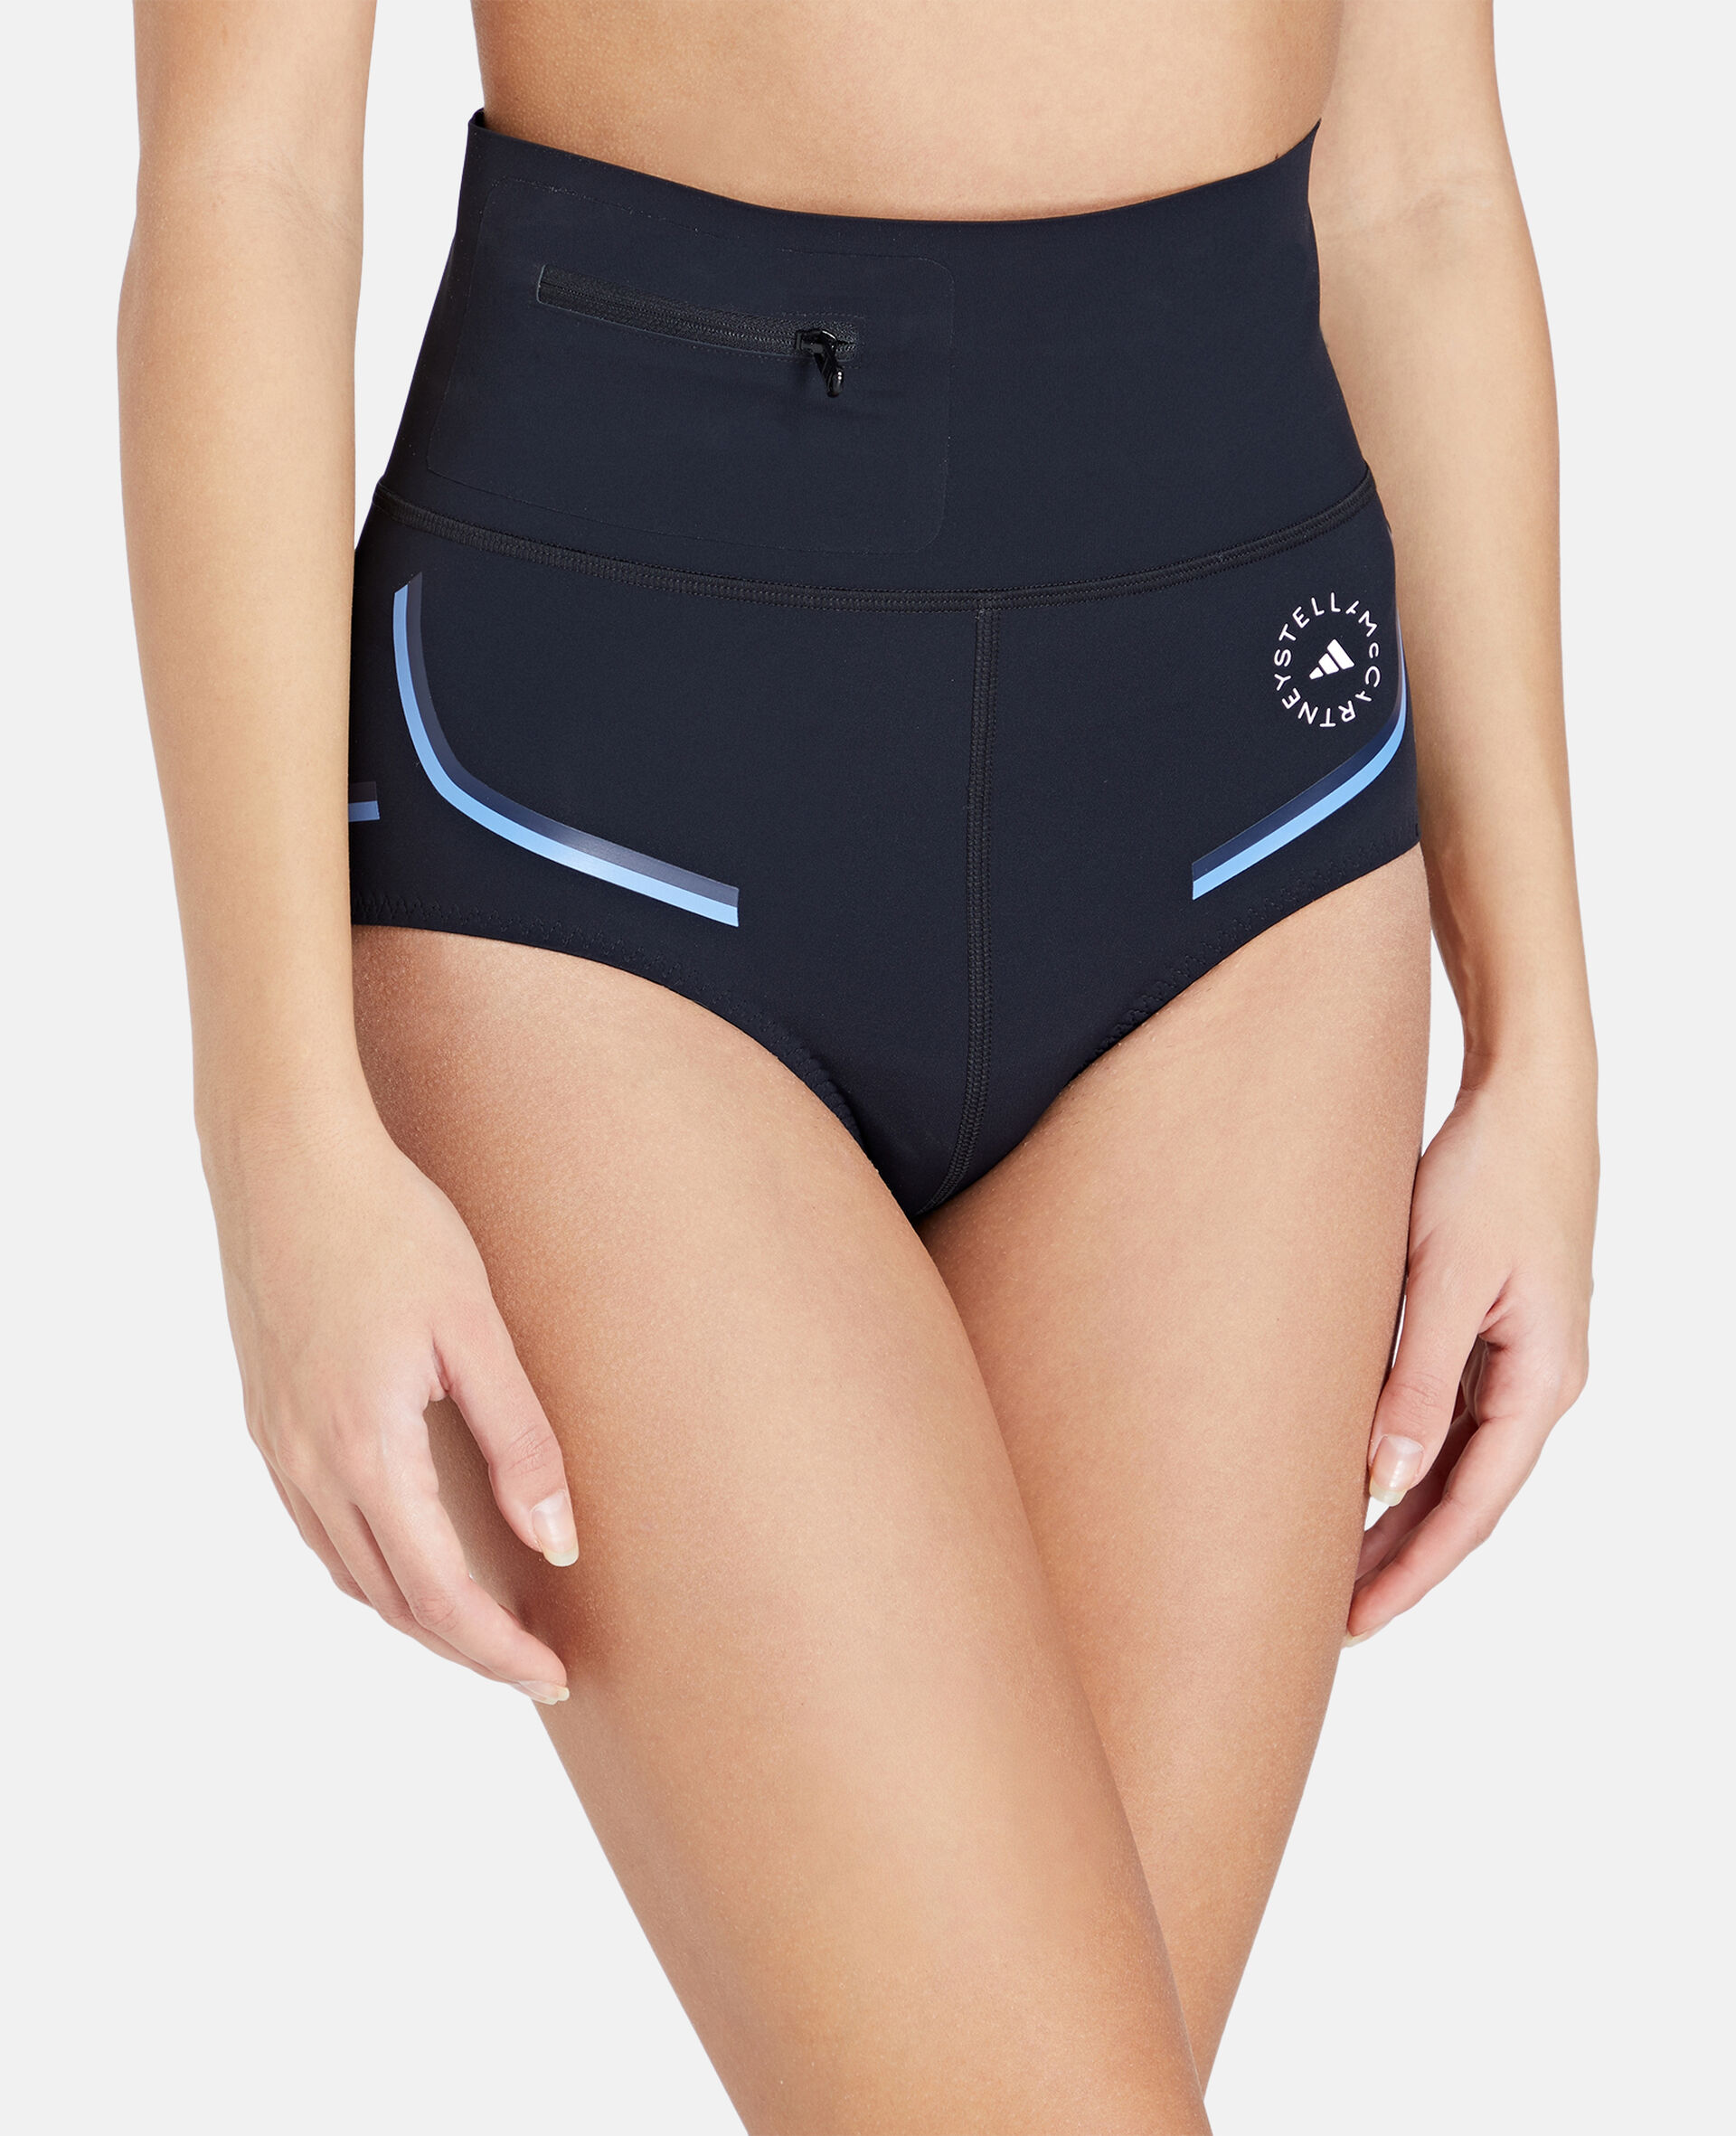 Black Beach Defender Bikini Shorts-Black-large image number 3